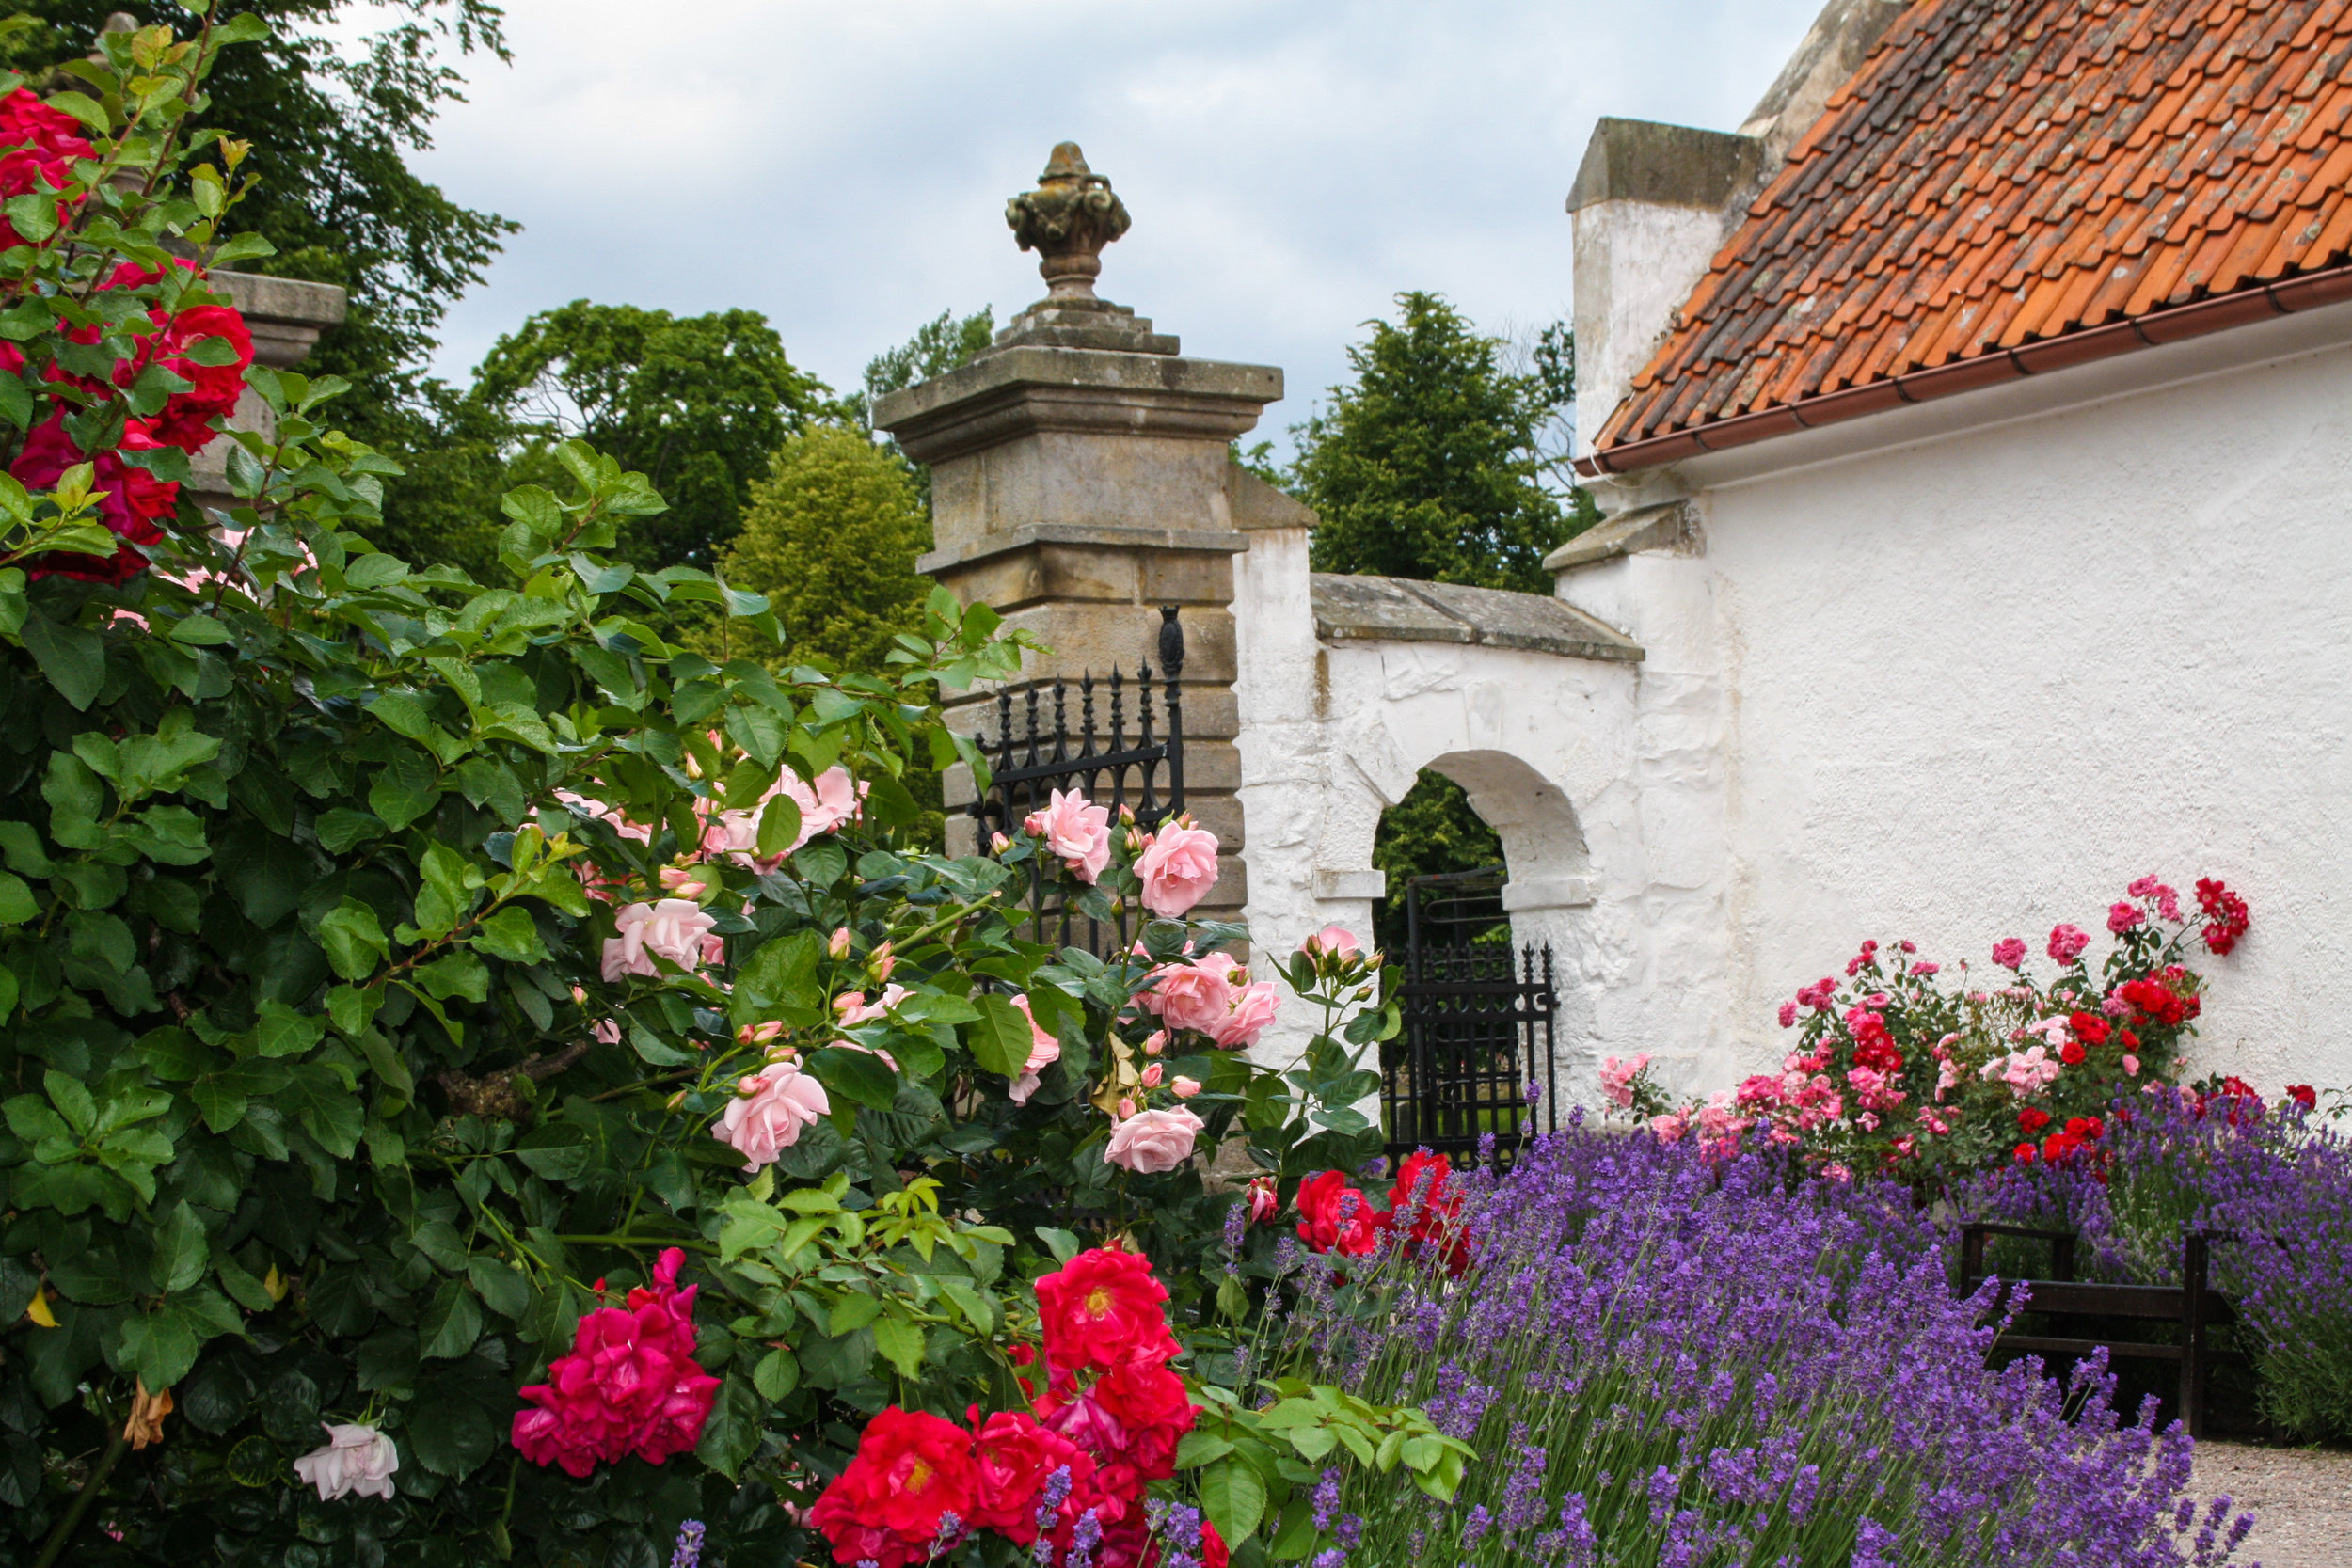 In the Court Yard, roses bloom among lavender, framed in by box hedges.